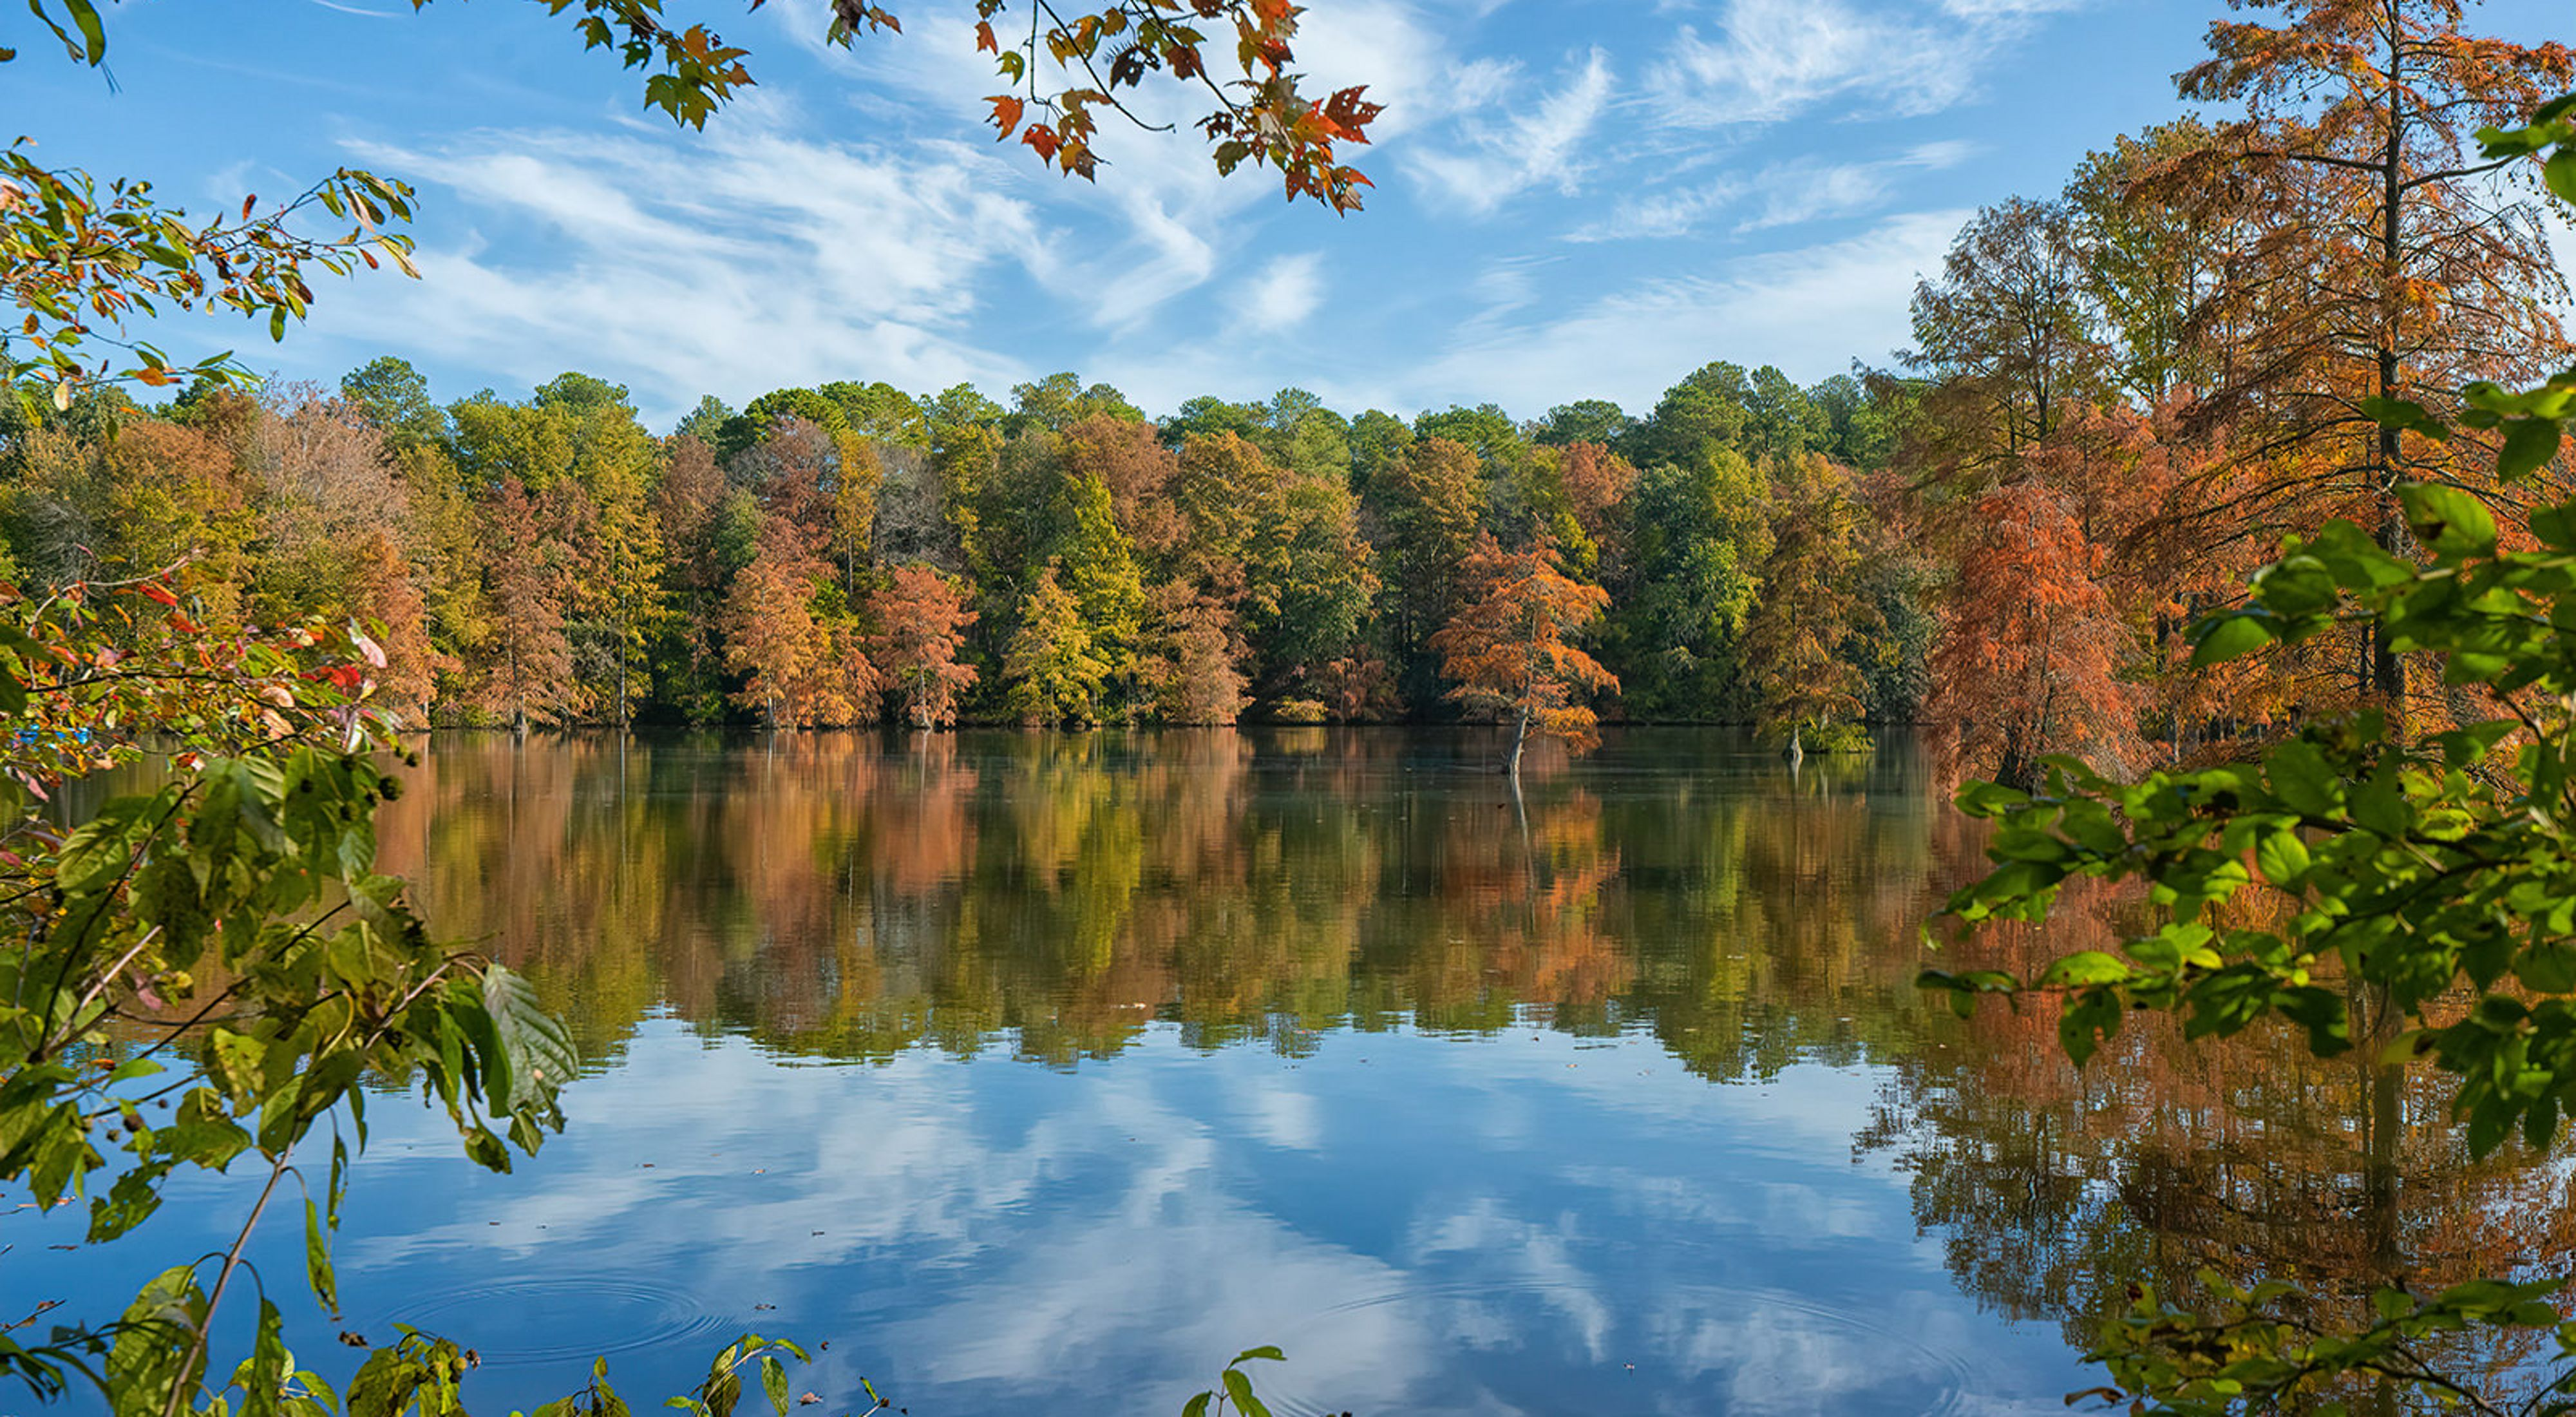 Trees in early fall colors of orange and gold. The still flat water of Trap Pond reflect the trees and blue sky streaked with puffy white clouds above.